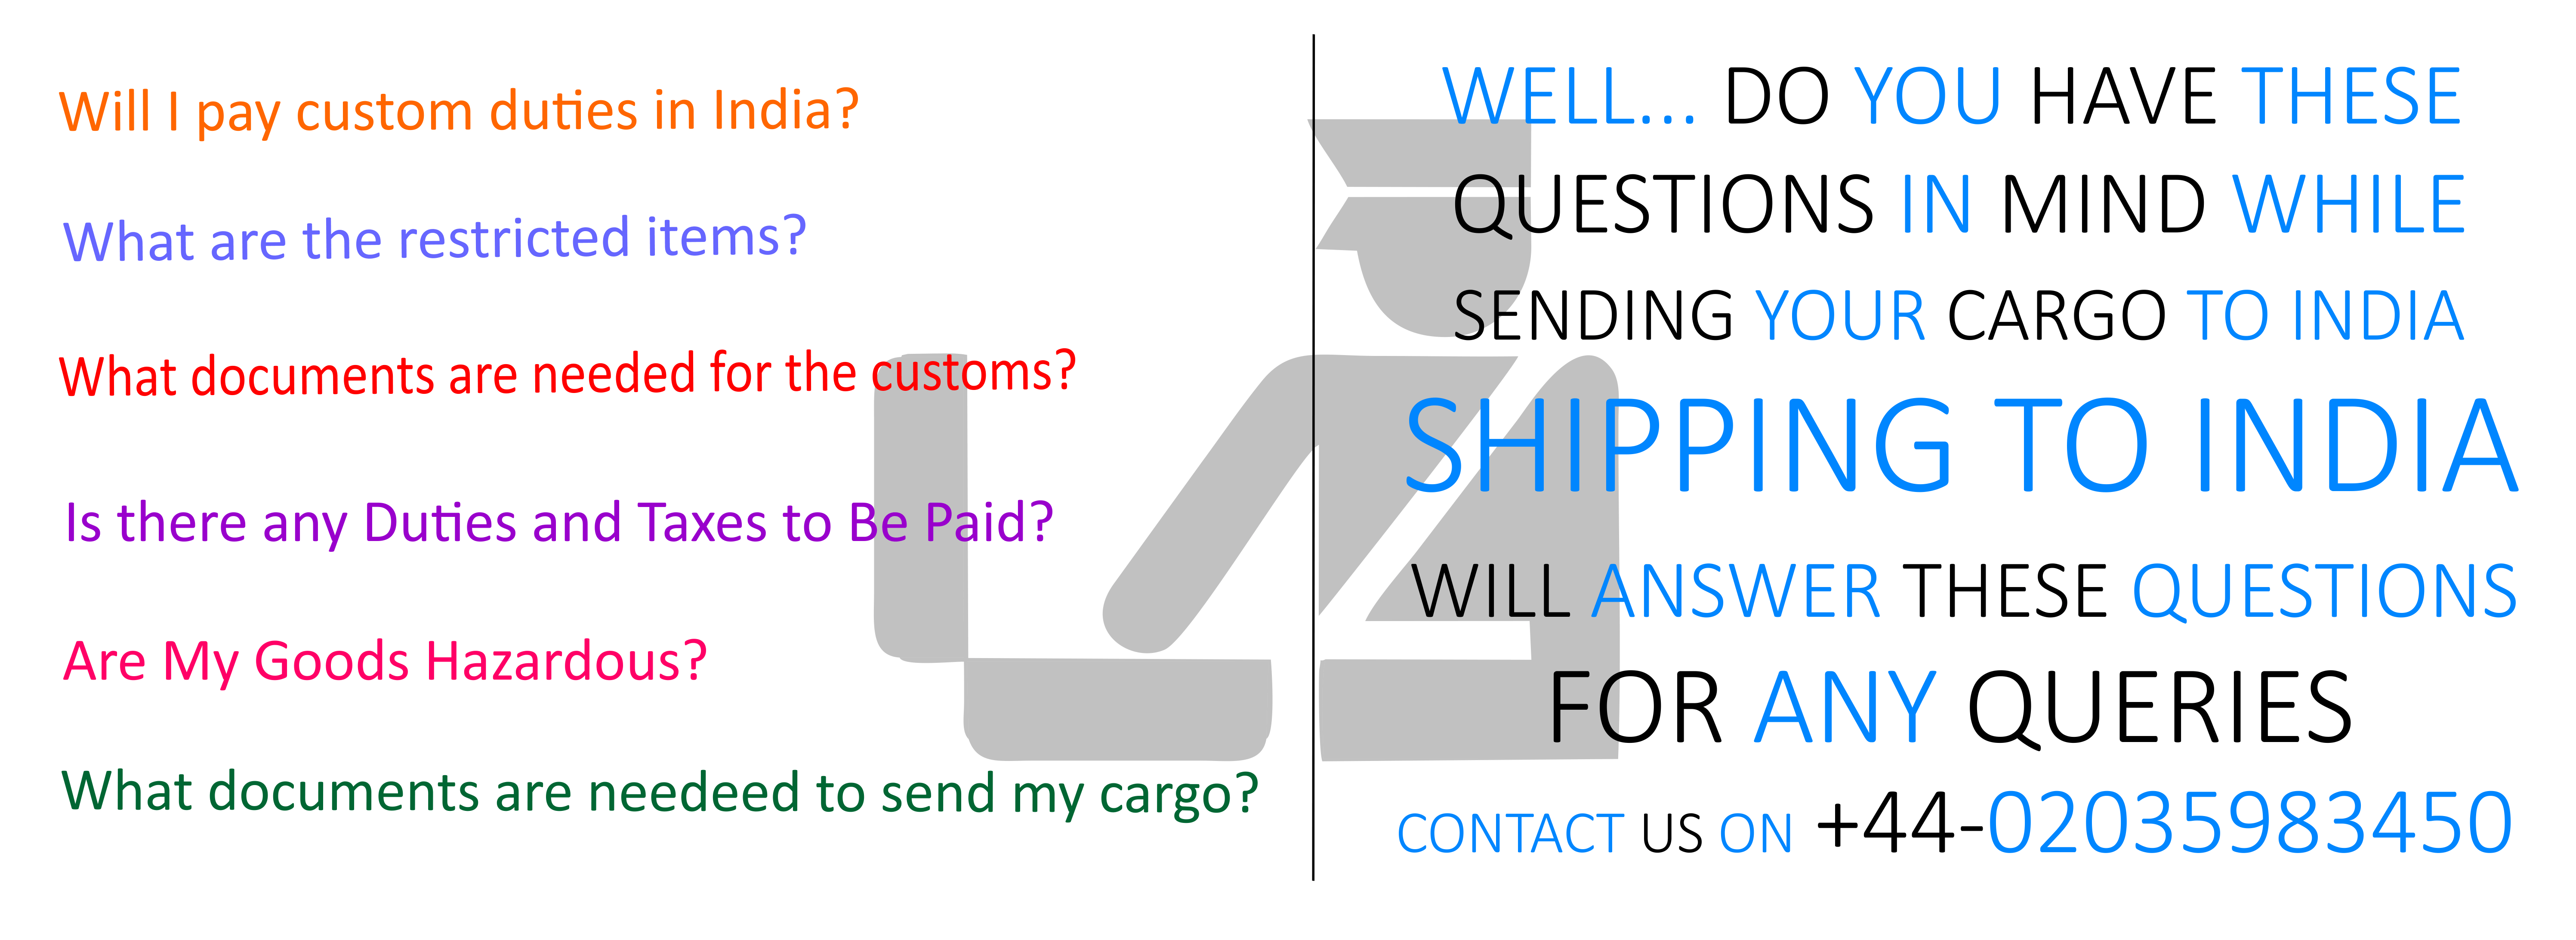 SHIPPING-TO-INDIA-CUSTOMS ADVICE BANNER